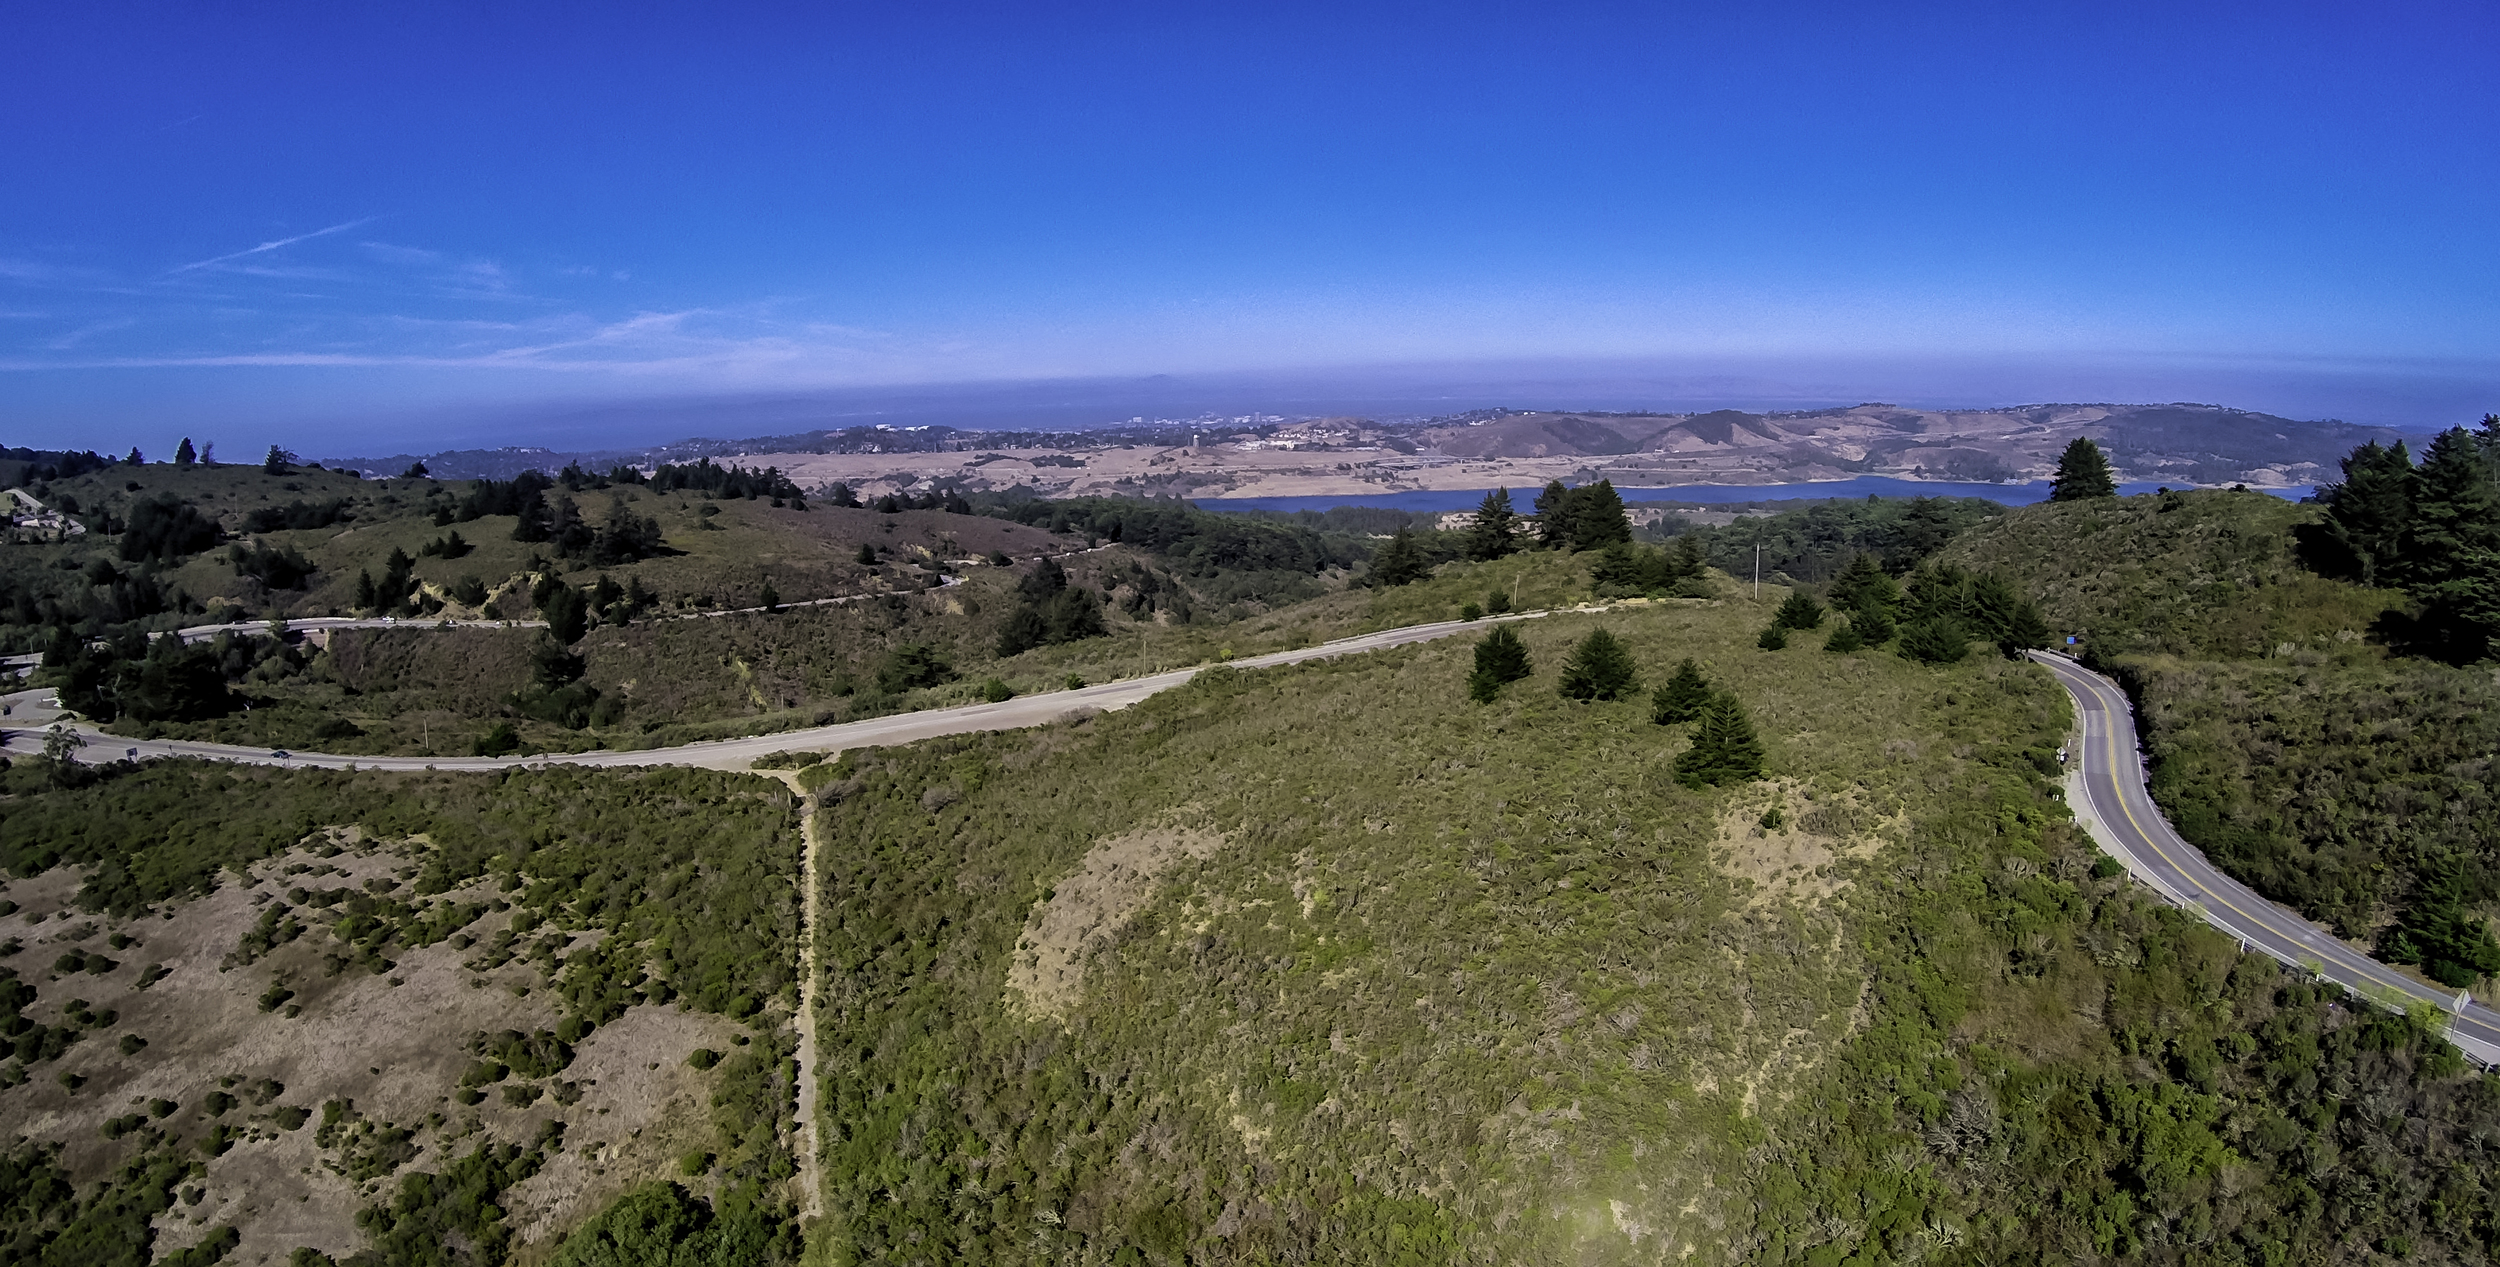 Approaching The Crystal Springs Reservoir